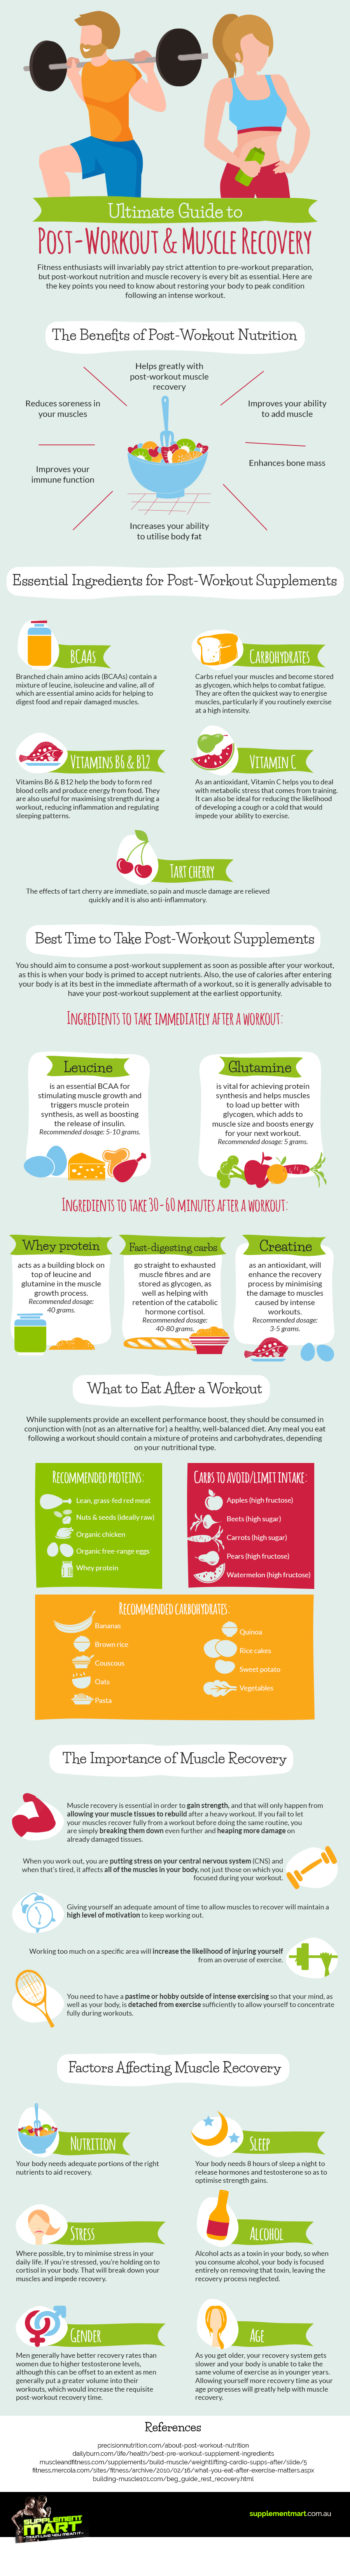 Ultimate Guide to Post Workout & Muscle Recovery [Infographic]